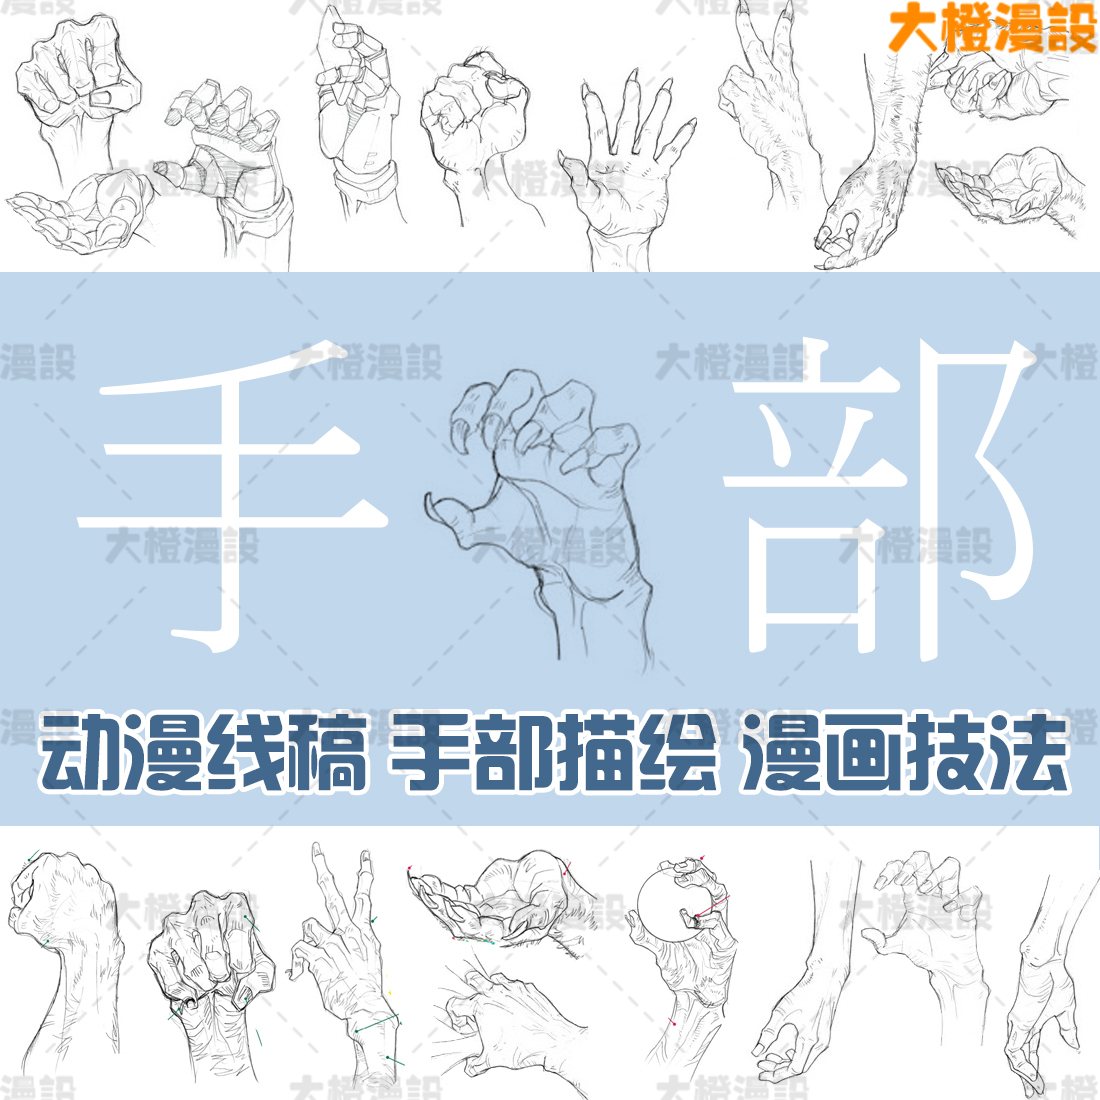 The cartoon material of the line manuscript lecture: Fang Hongzhi, human body, mind and mind